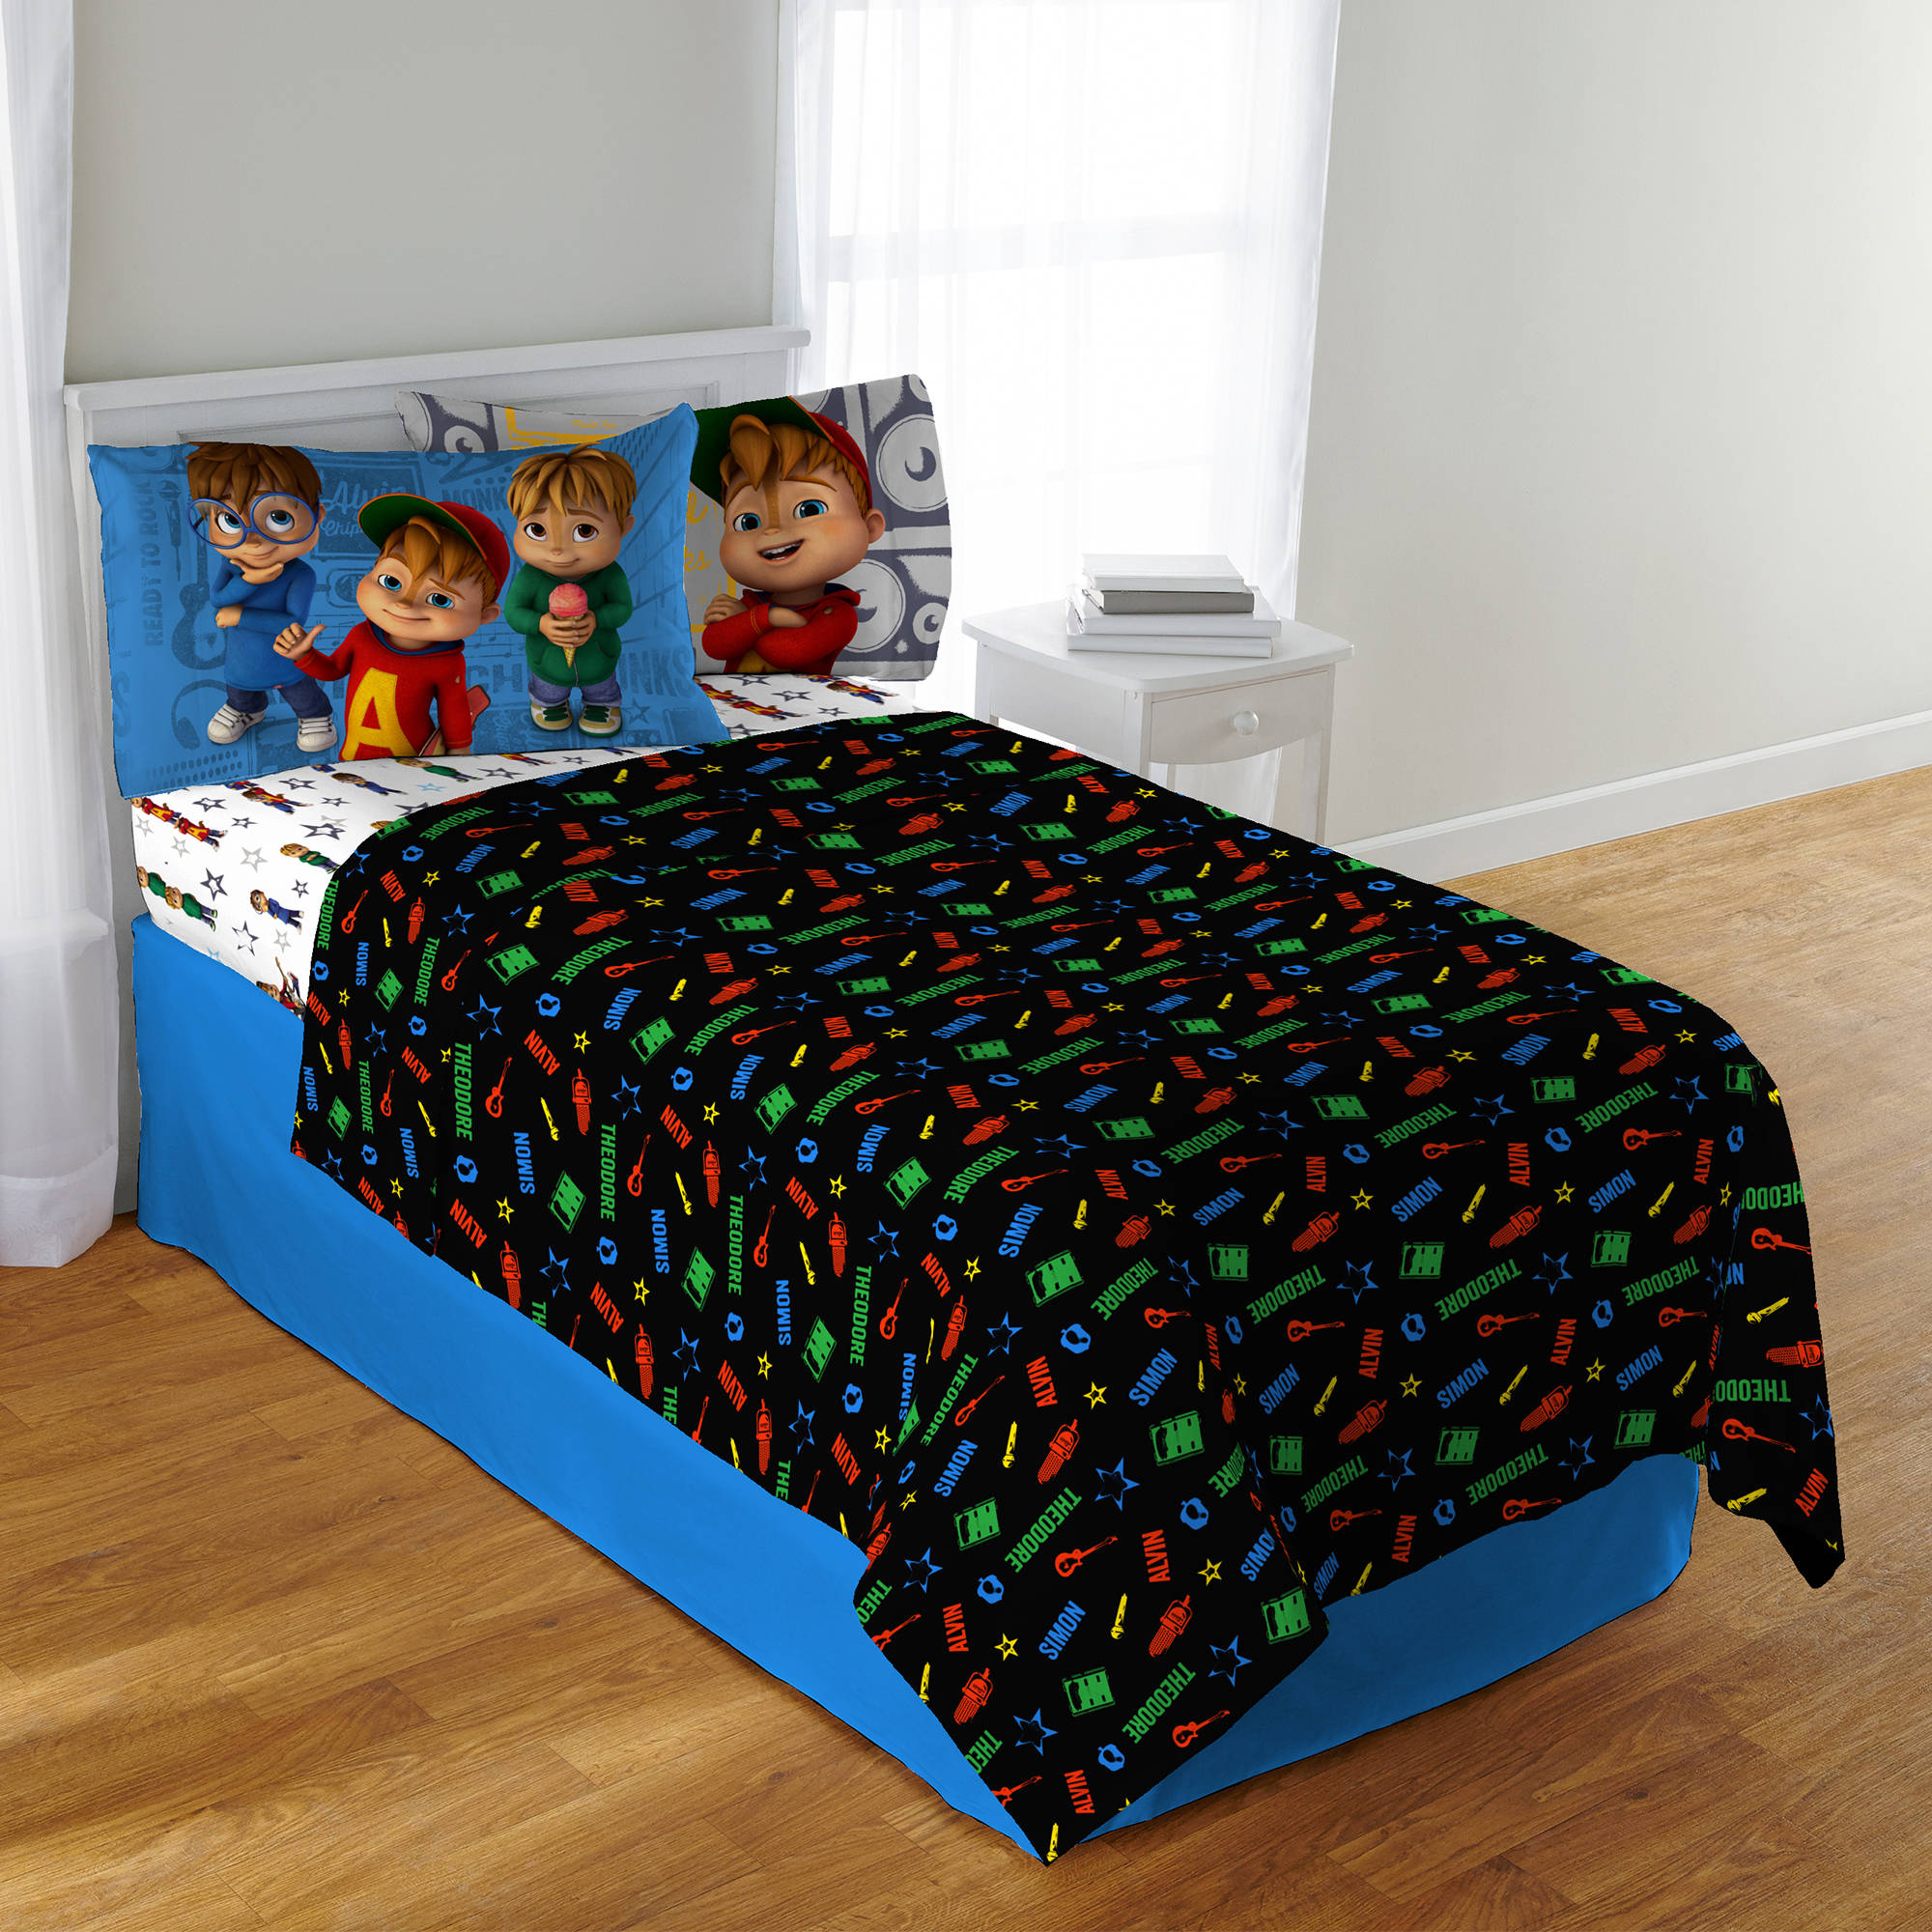 Alvin and the Chipmunks School of Rock Kids Polyester Bedding Sheet Set